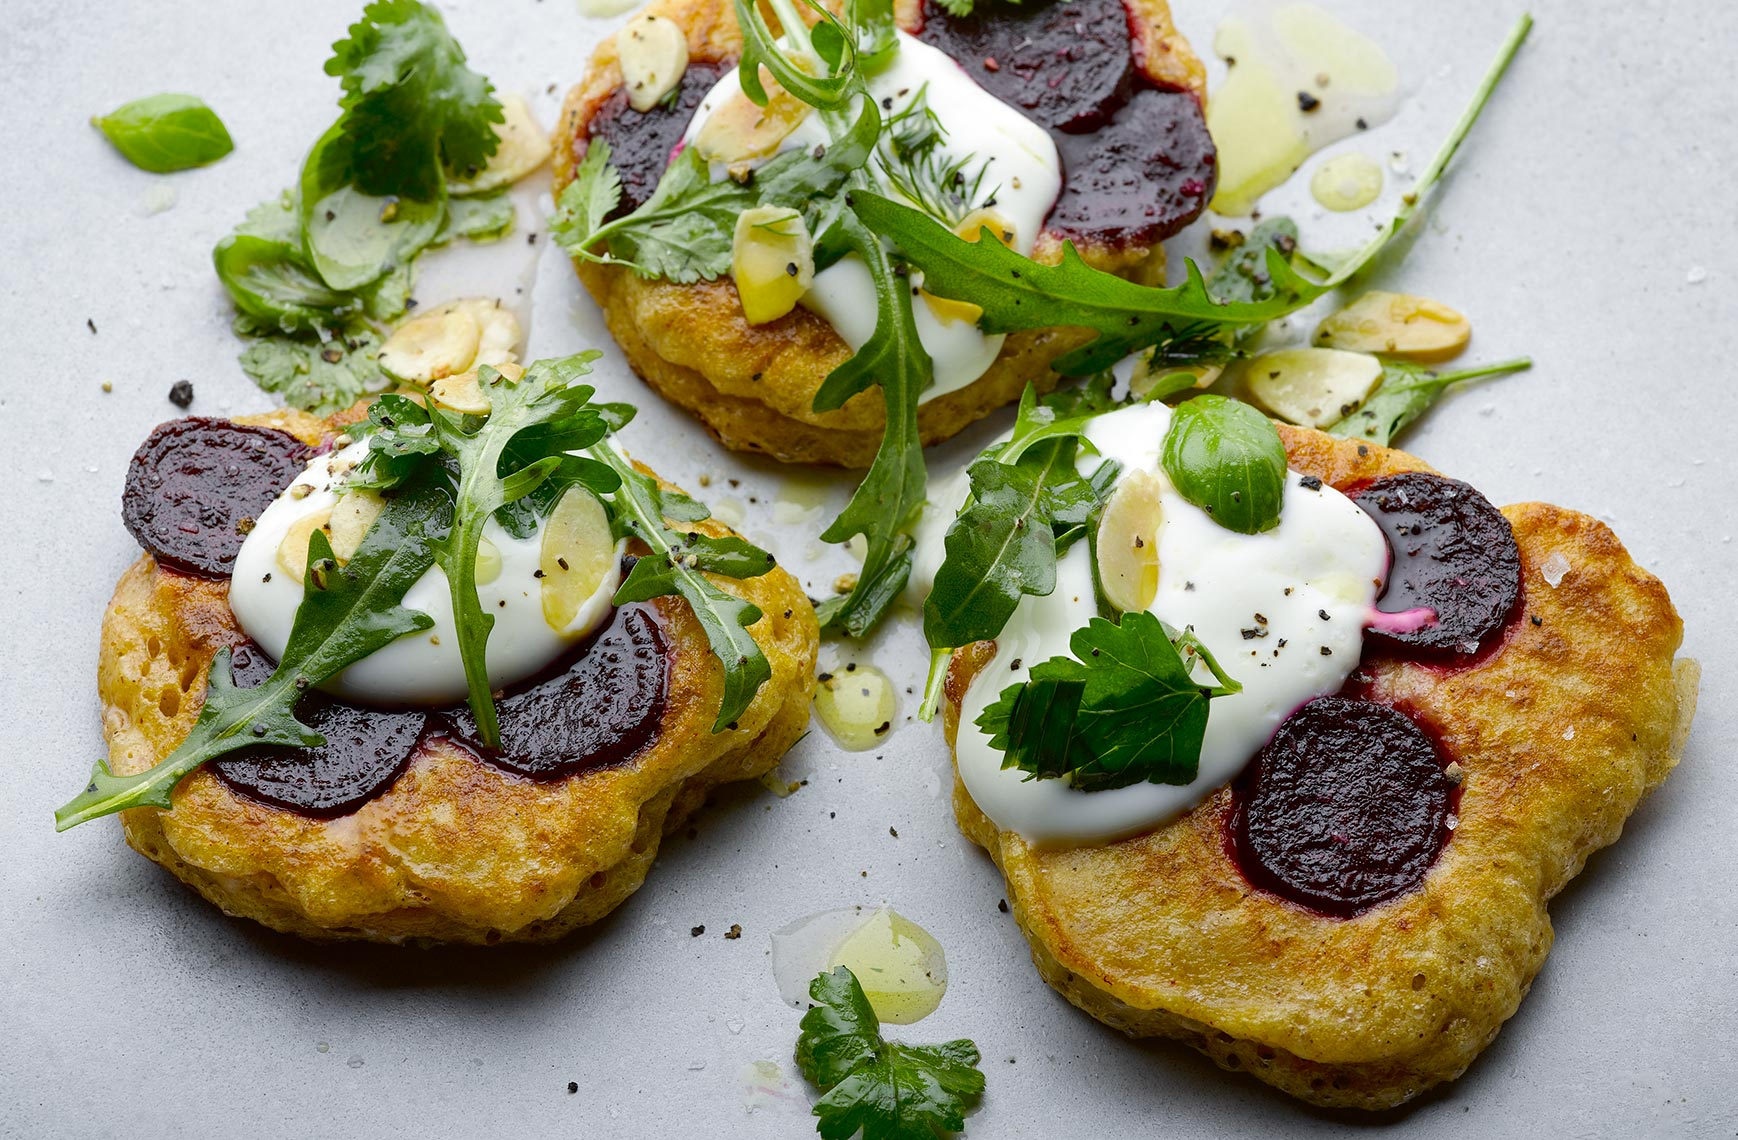 Ottolenghi Beetroot blinis | Colin Campbell - Food Photographer